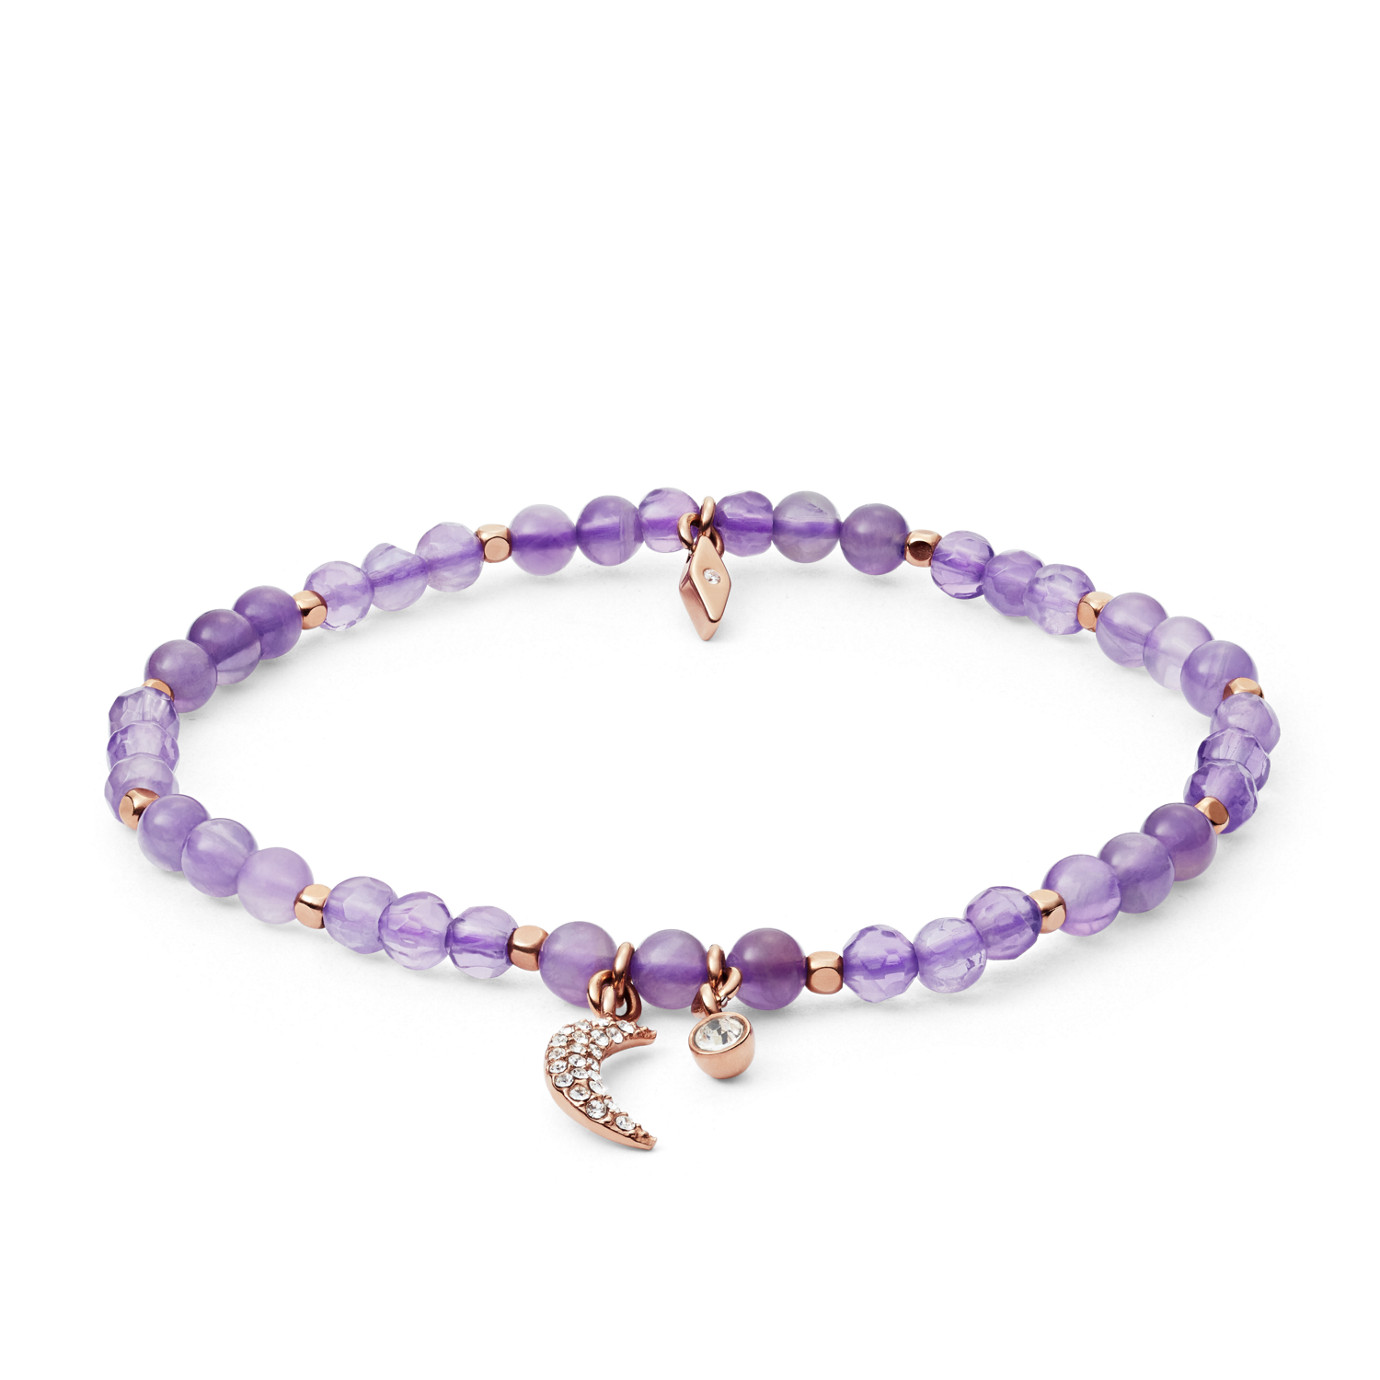 Wellness Purple Semi-Precious Bracelet